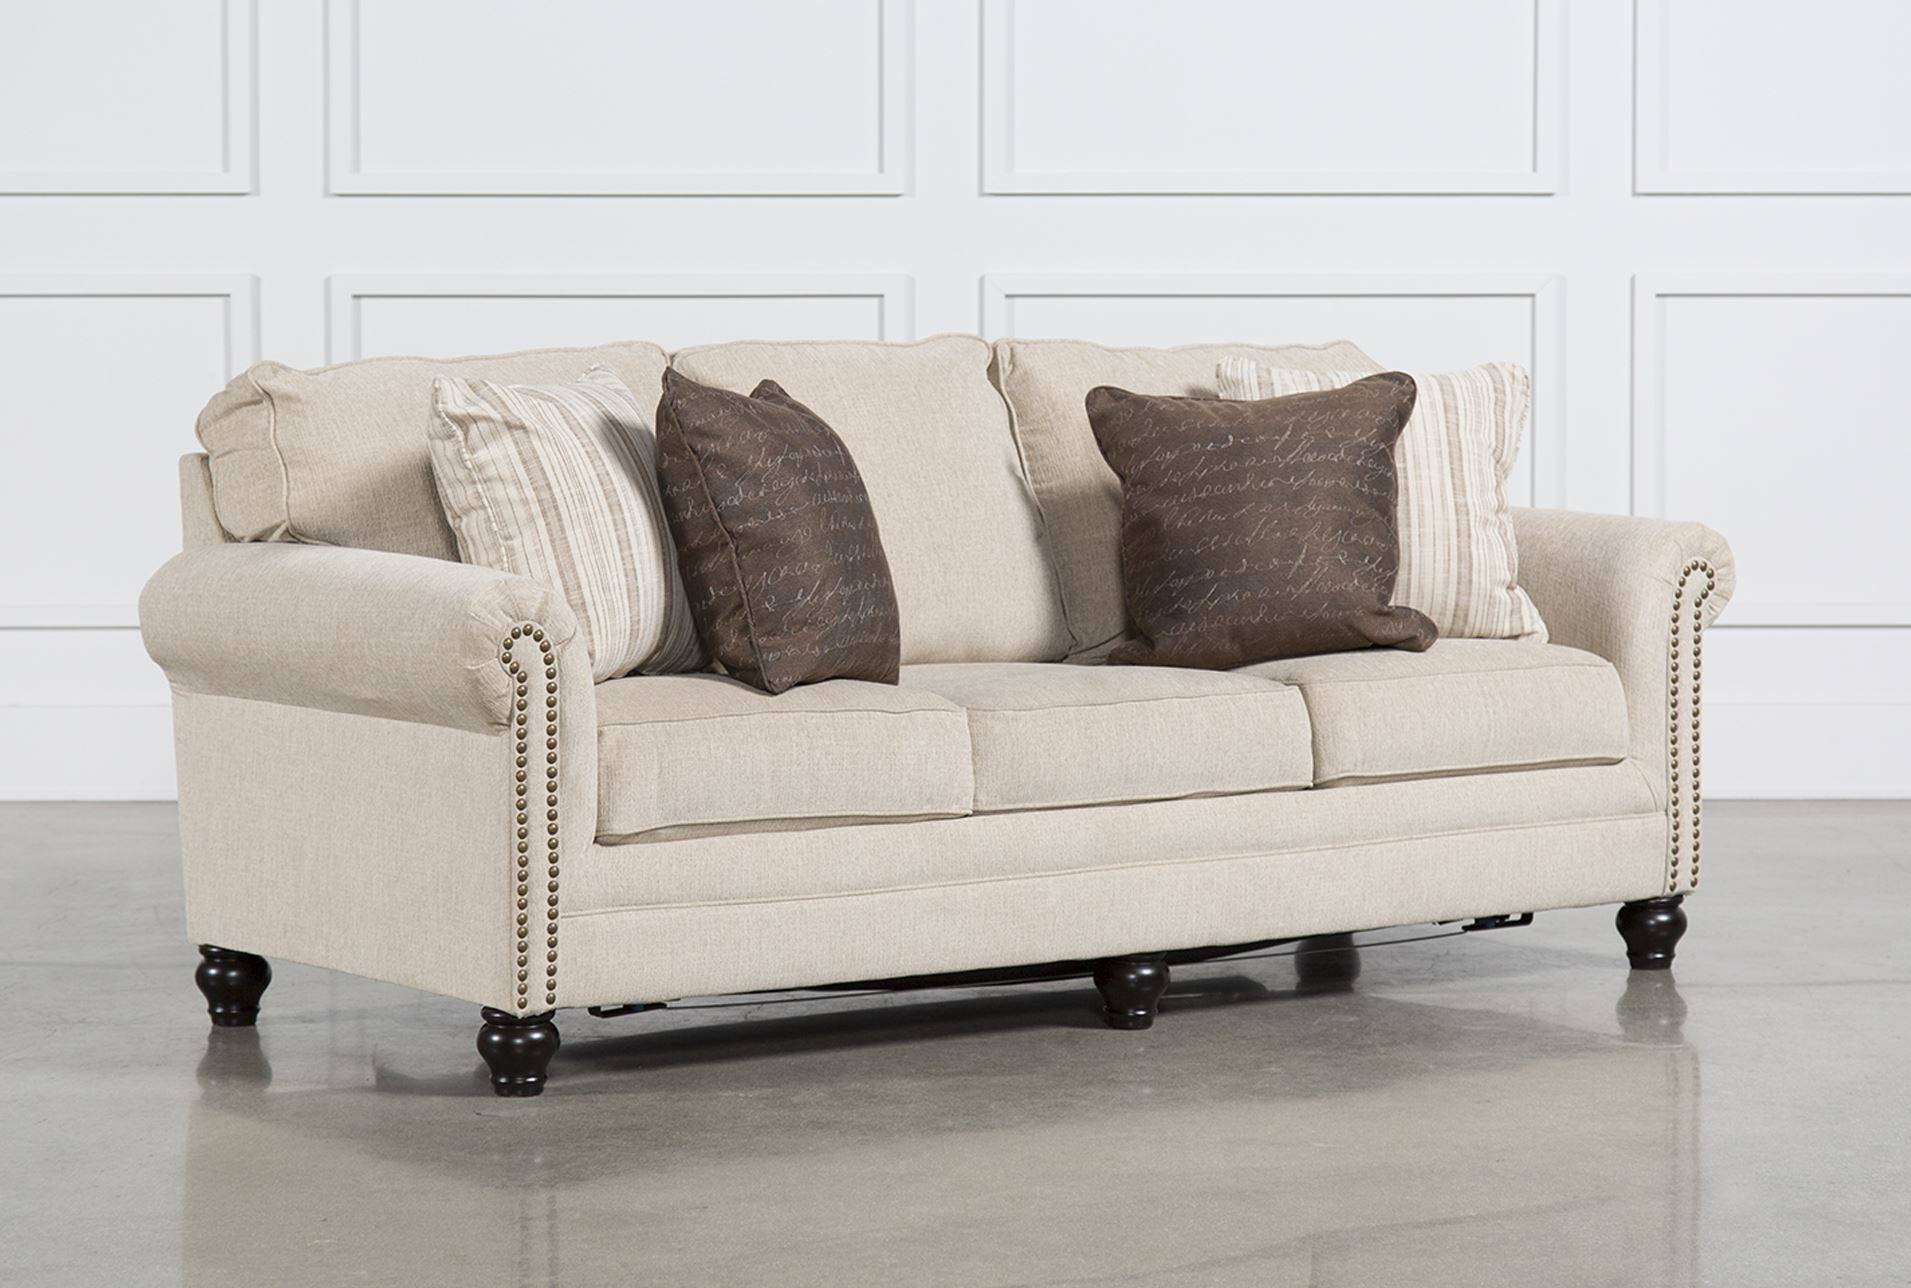 Living Spaces Sleeper Sofa - Tourdecarroll for Queen Convertible Sofas (Image 6 of 15)